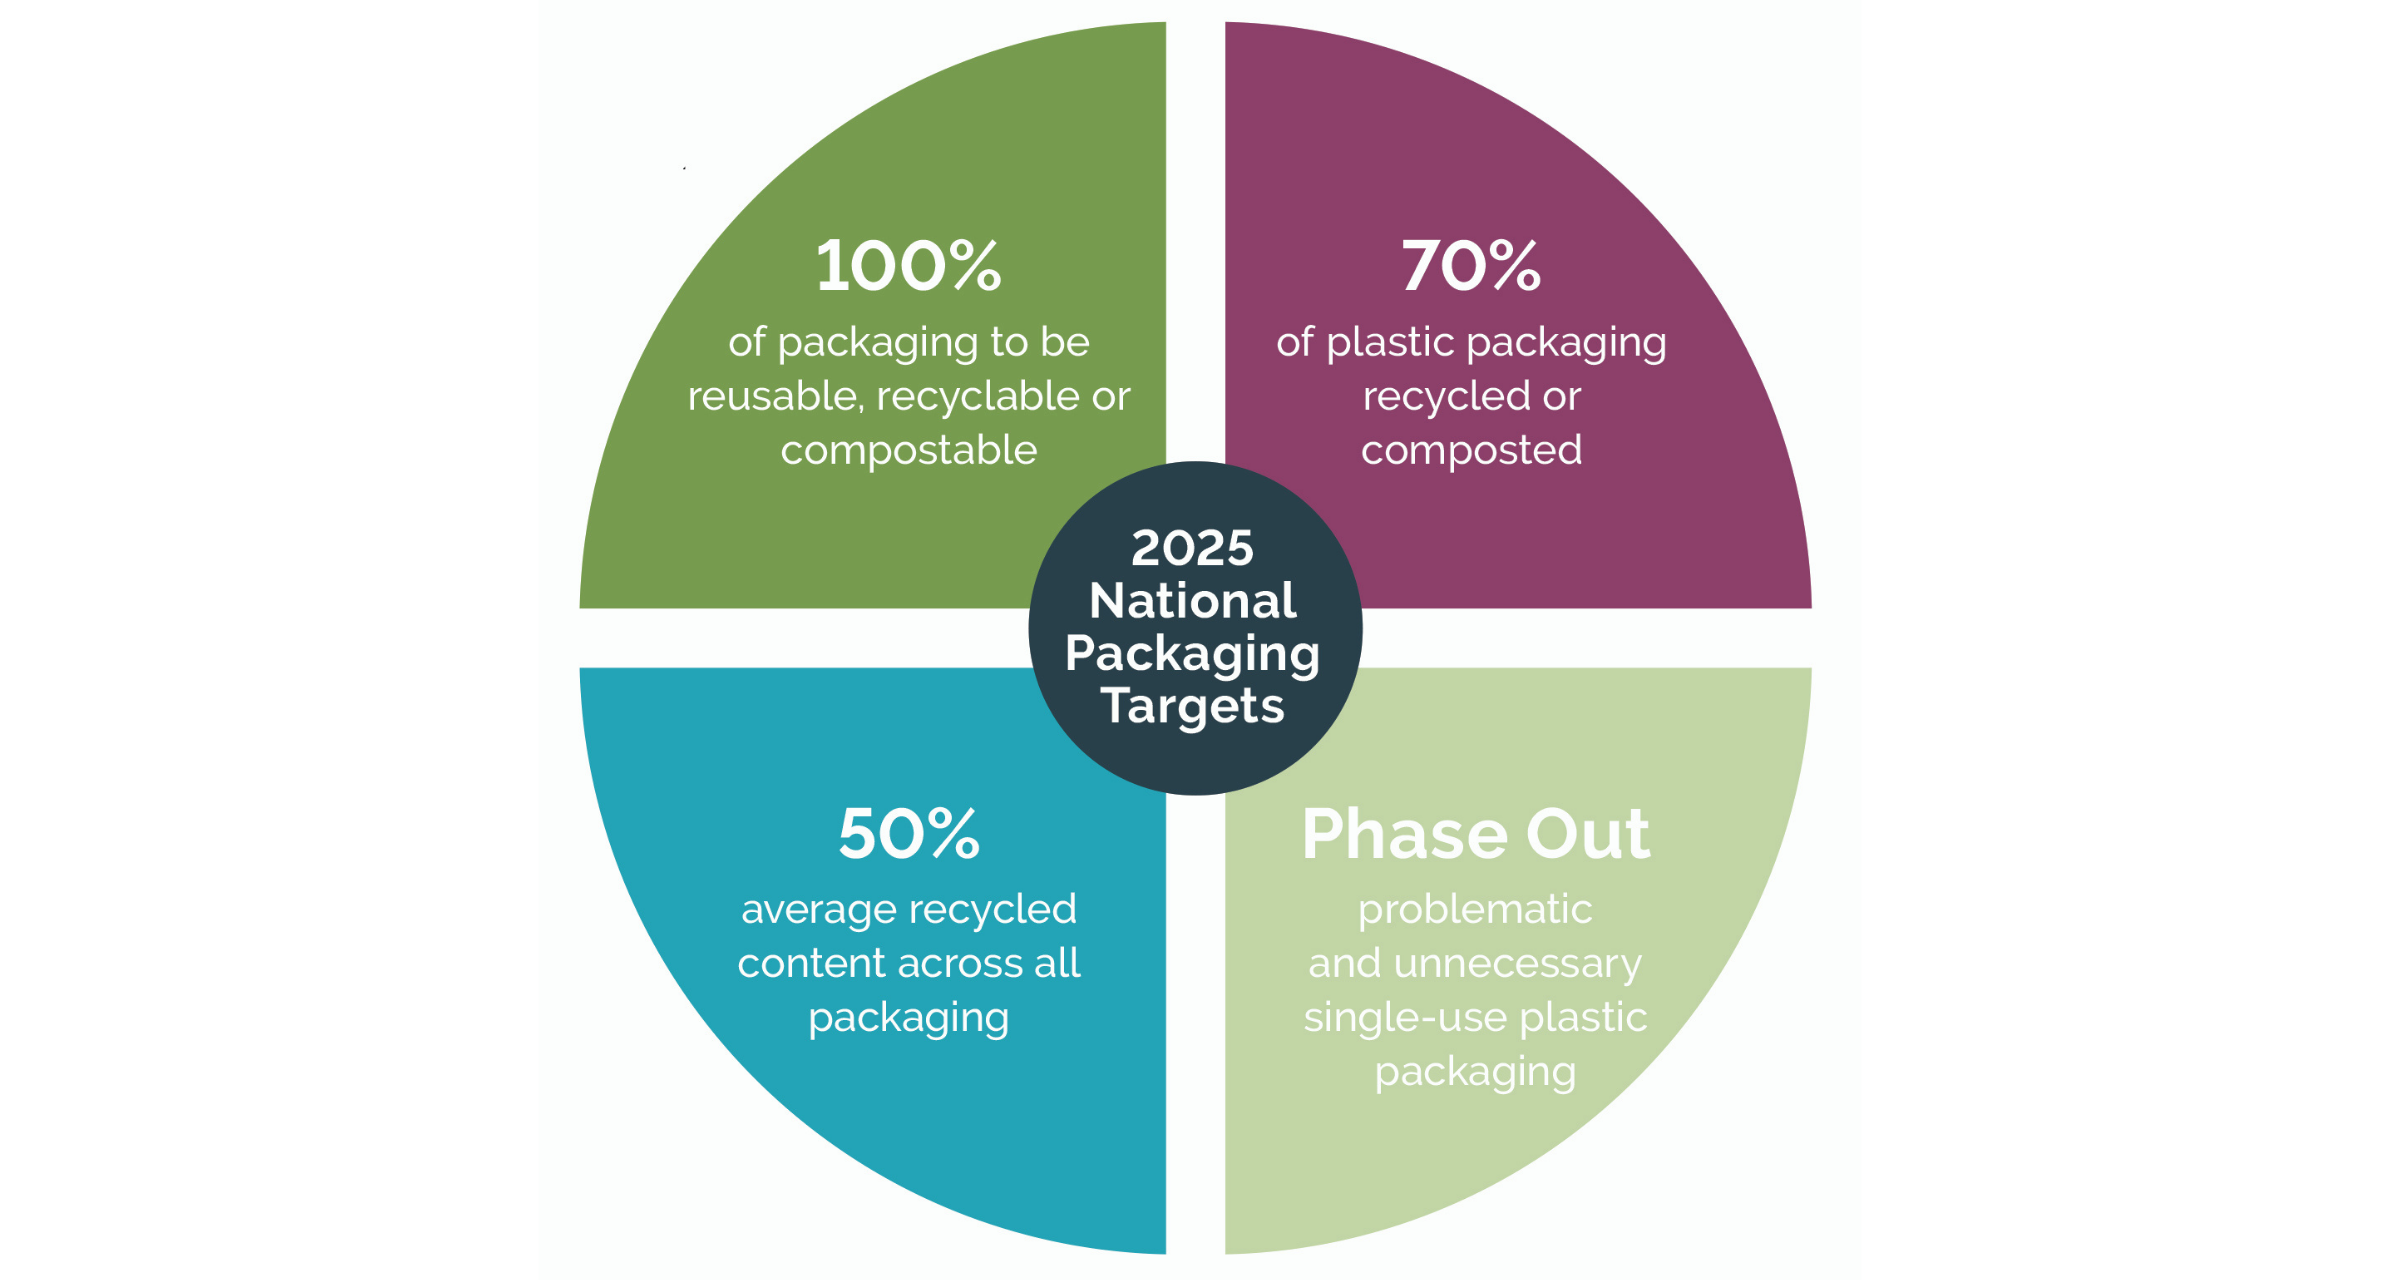 2025 National Packaging Target